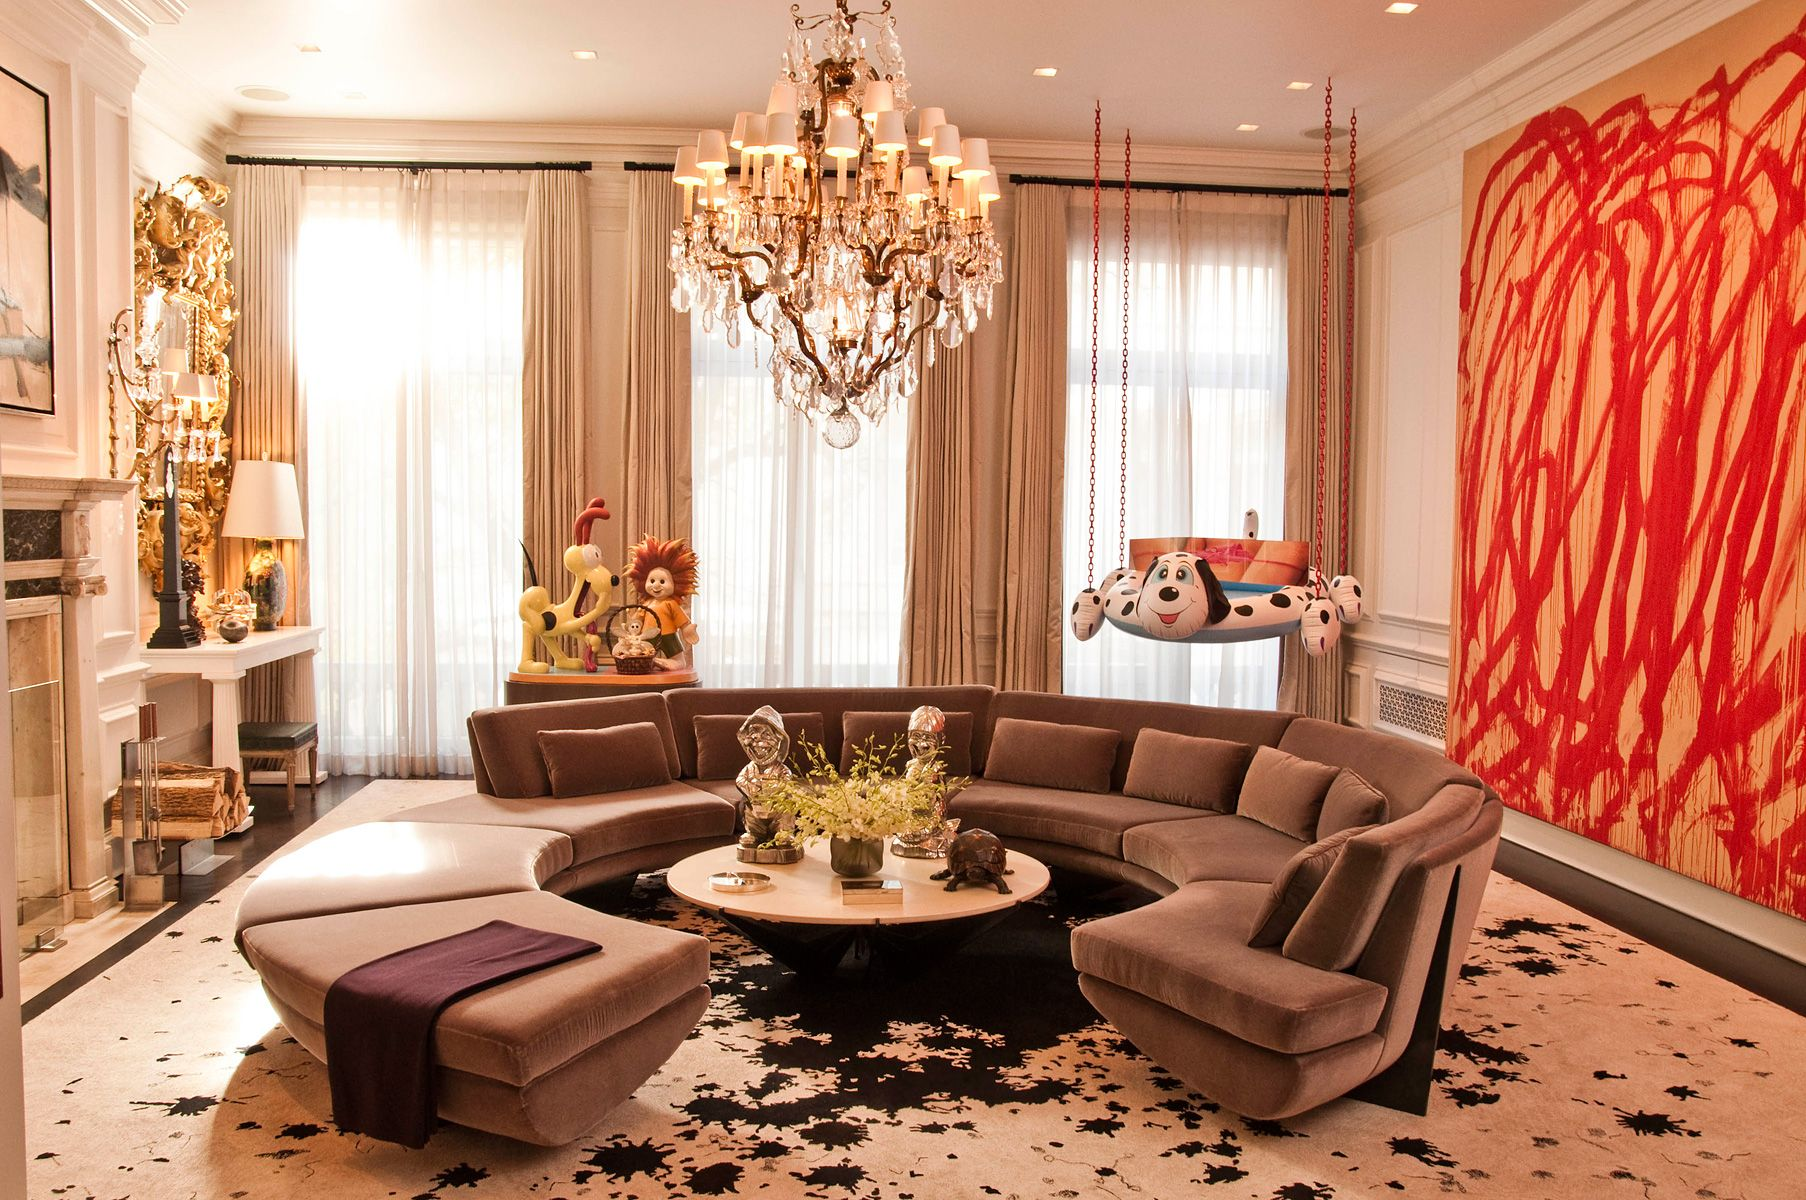 Classic And Luxury Apartment Living Room With Round Sofa And Crystal  Chandelier Can Apply To Your Room And Get Trendy And Stylish Decor For The  Interior, ...